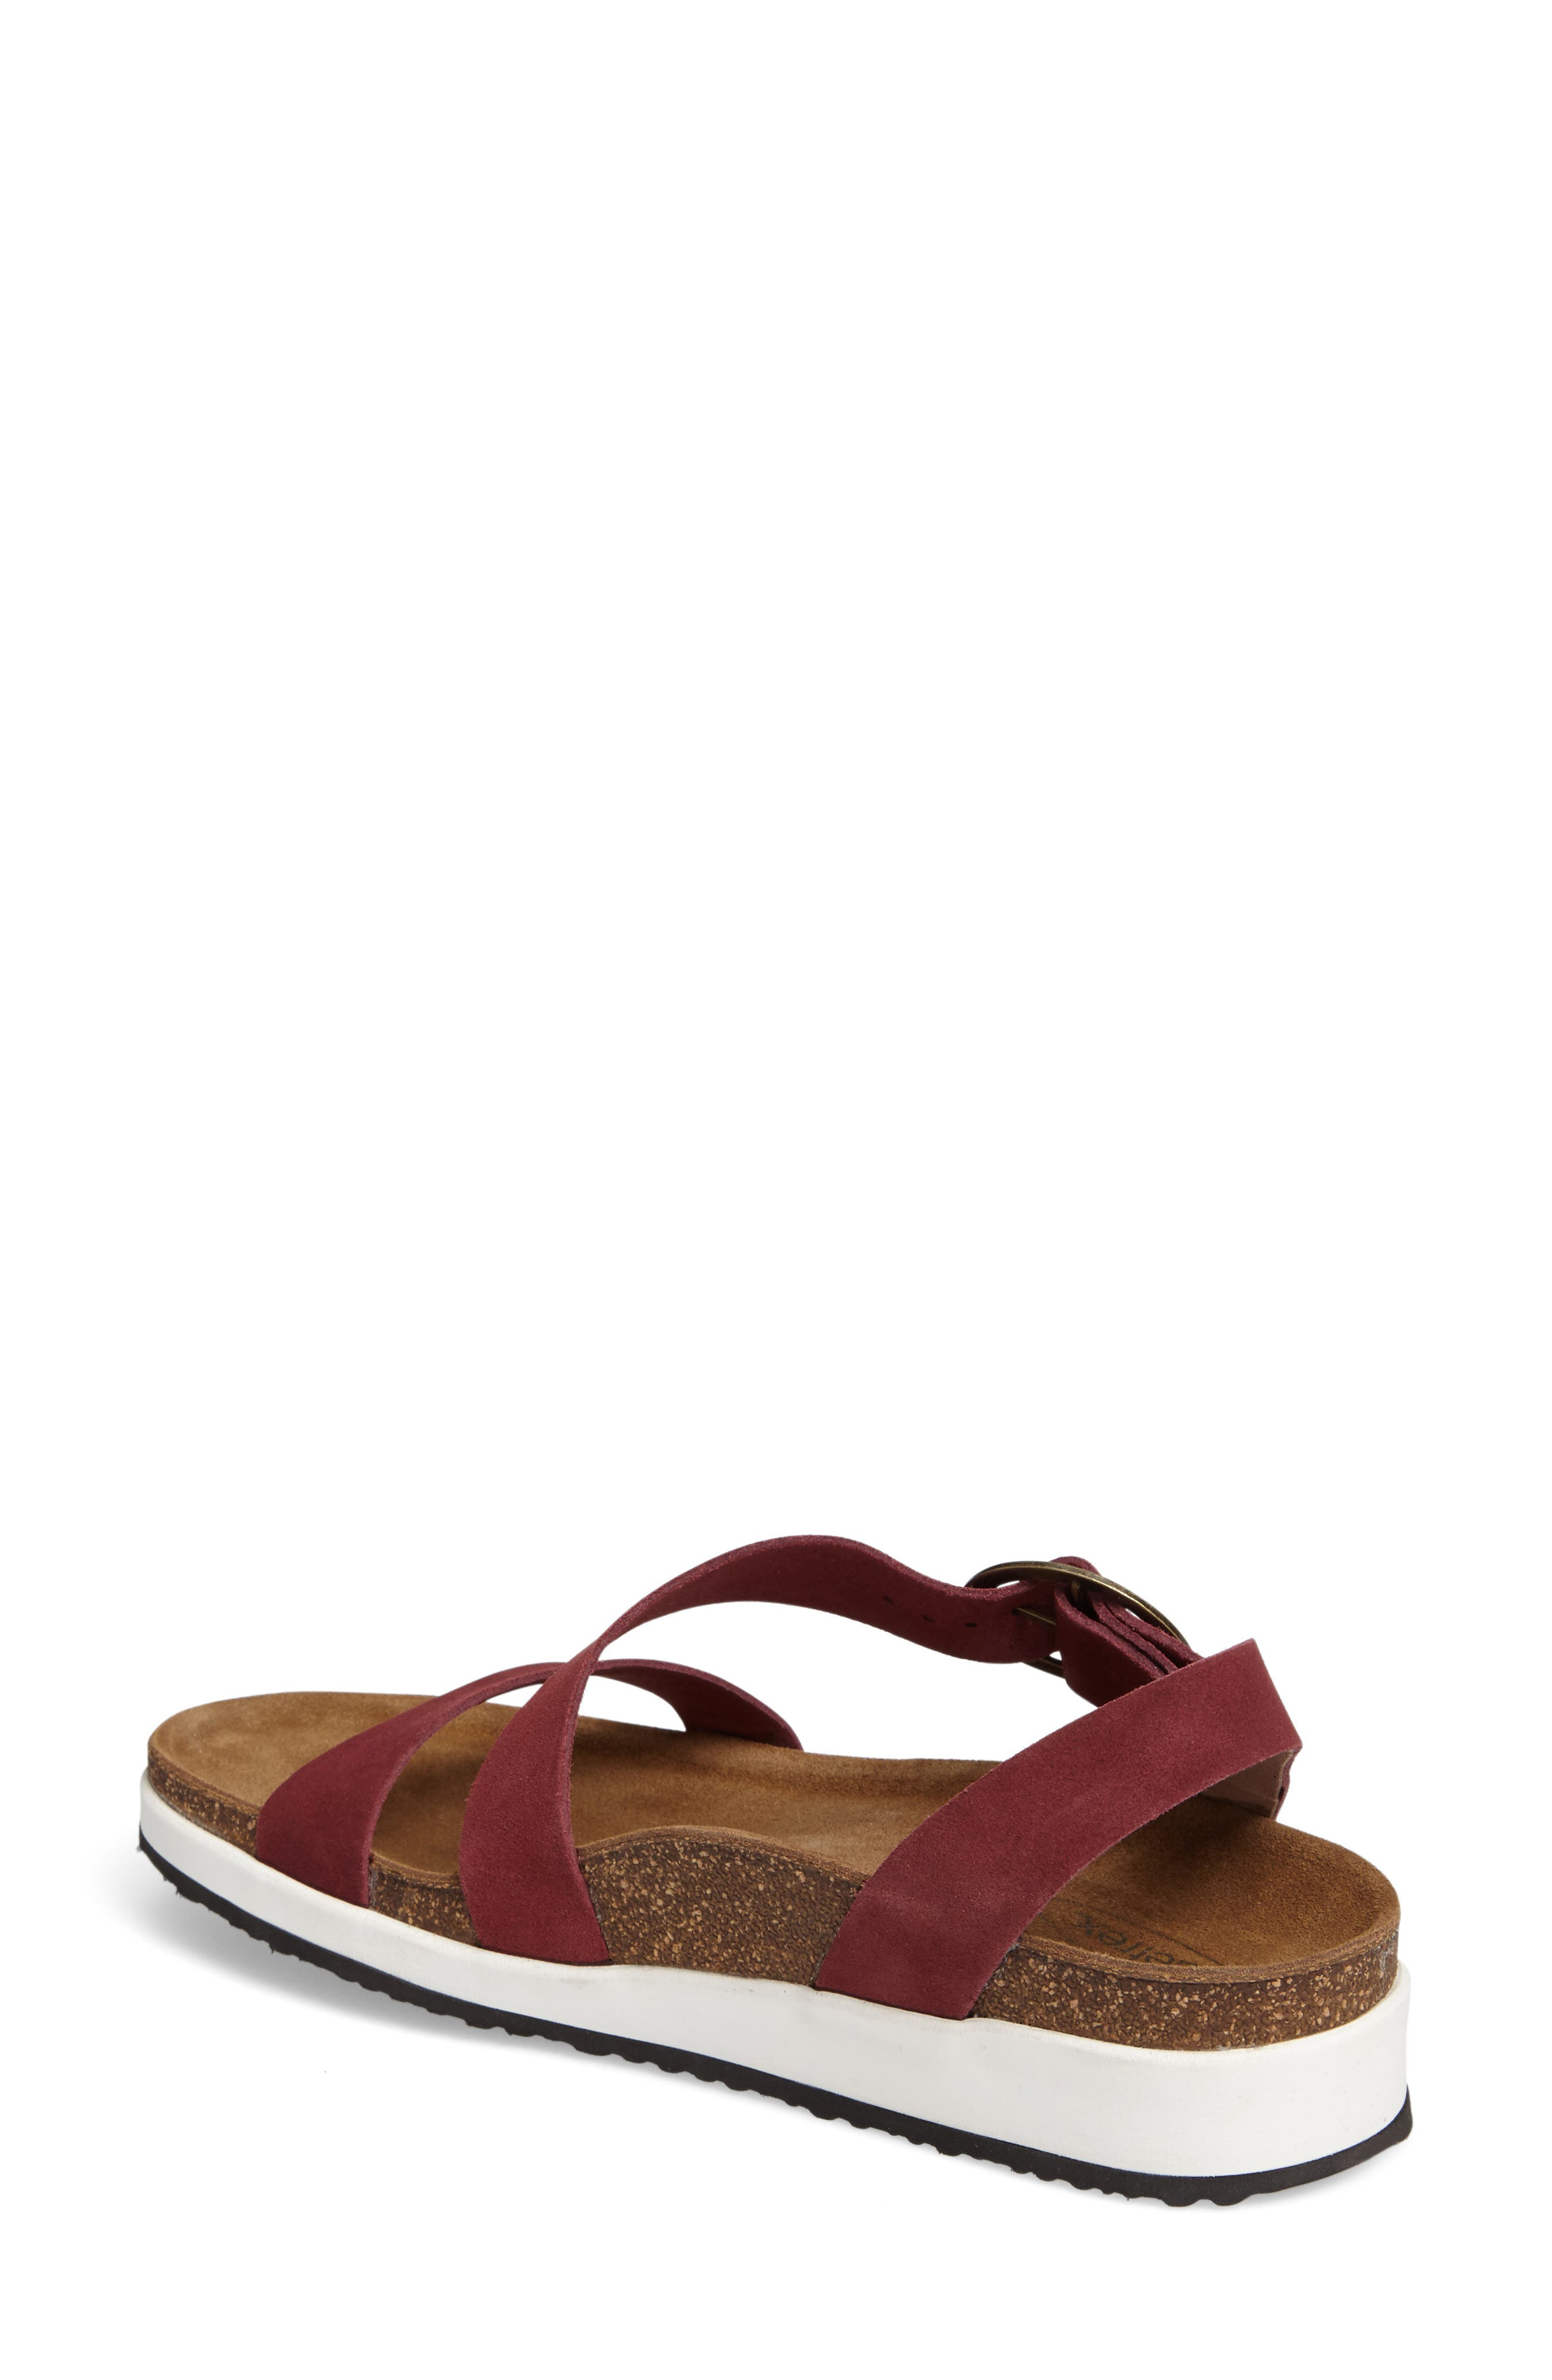 Adrianna Sandal,                             Alternate thumbnail 2, color,                             Maroon Suede